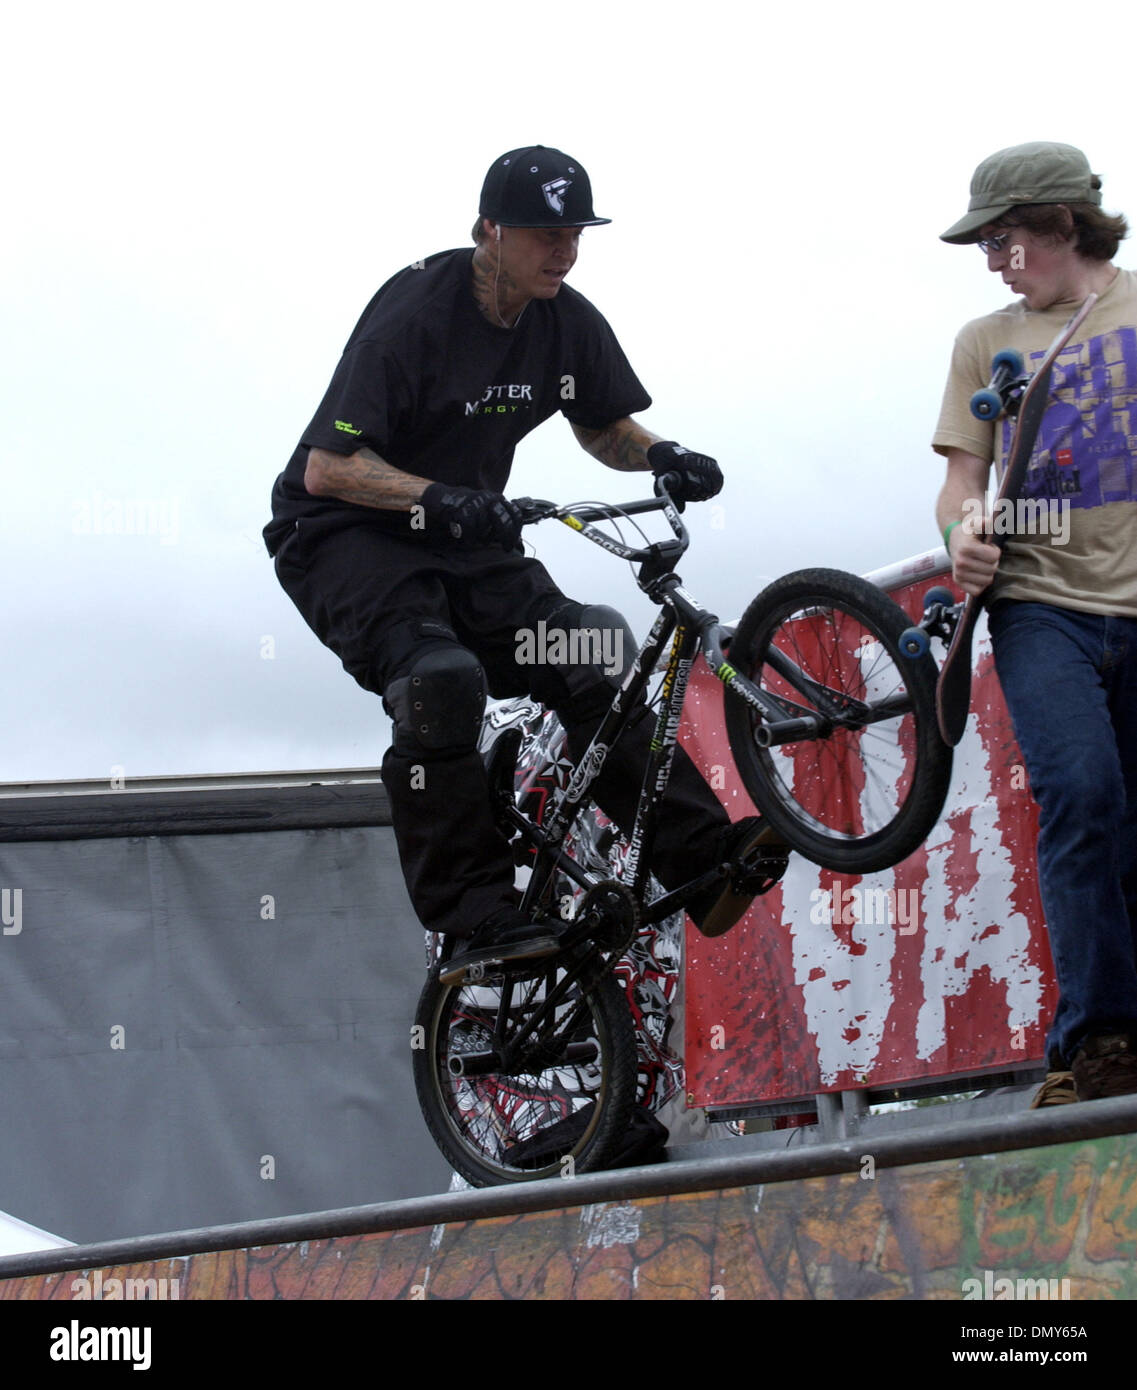 Jun 27, 2006; Raleigh, NC, USA; A person rides a bicycle on a half pipe ramp at the 2006 Vans Warped Tour makes a stop at Alltel Pavilion located in Raleigh. Mandatory Credit: Photo by Jason Moore/ZUMA Press. (©) Copyright 2006 by Jason Moore - Stock Image